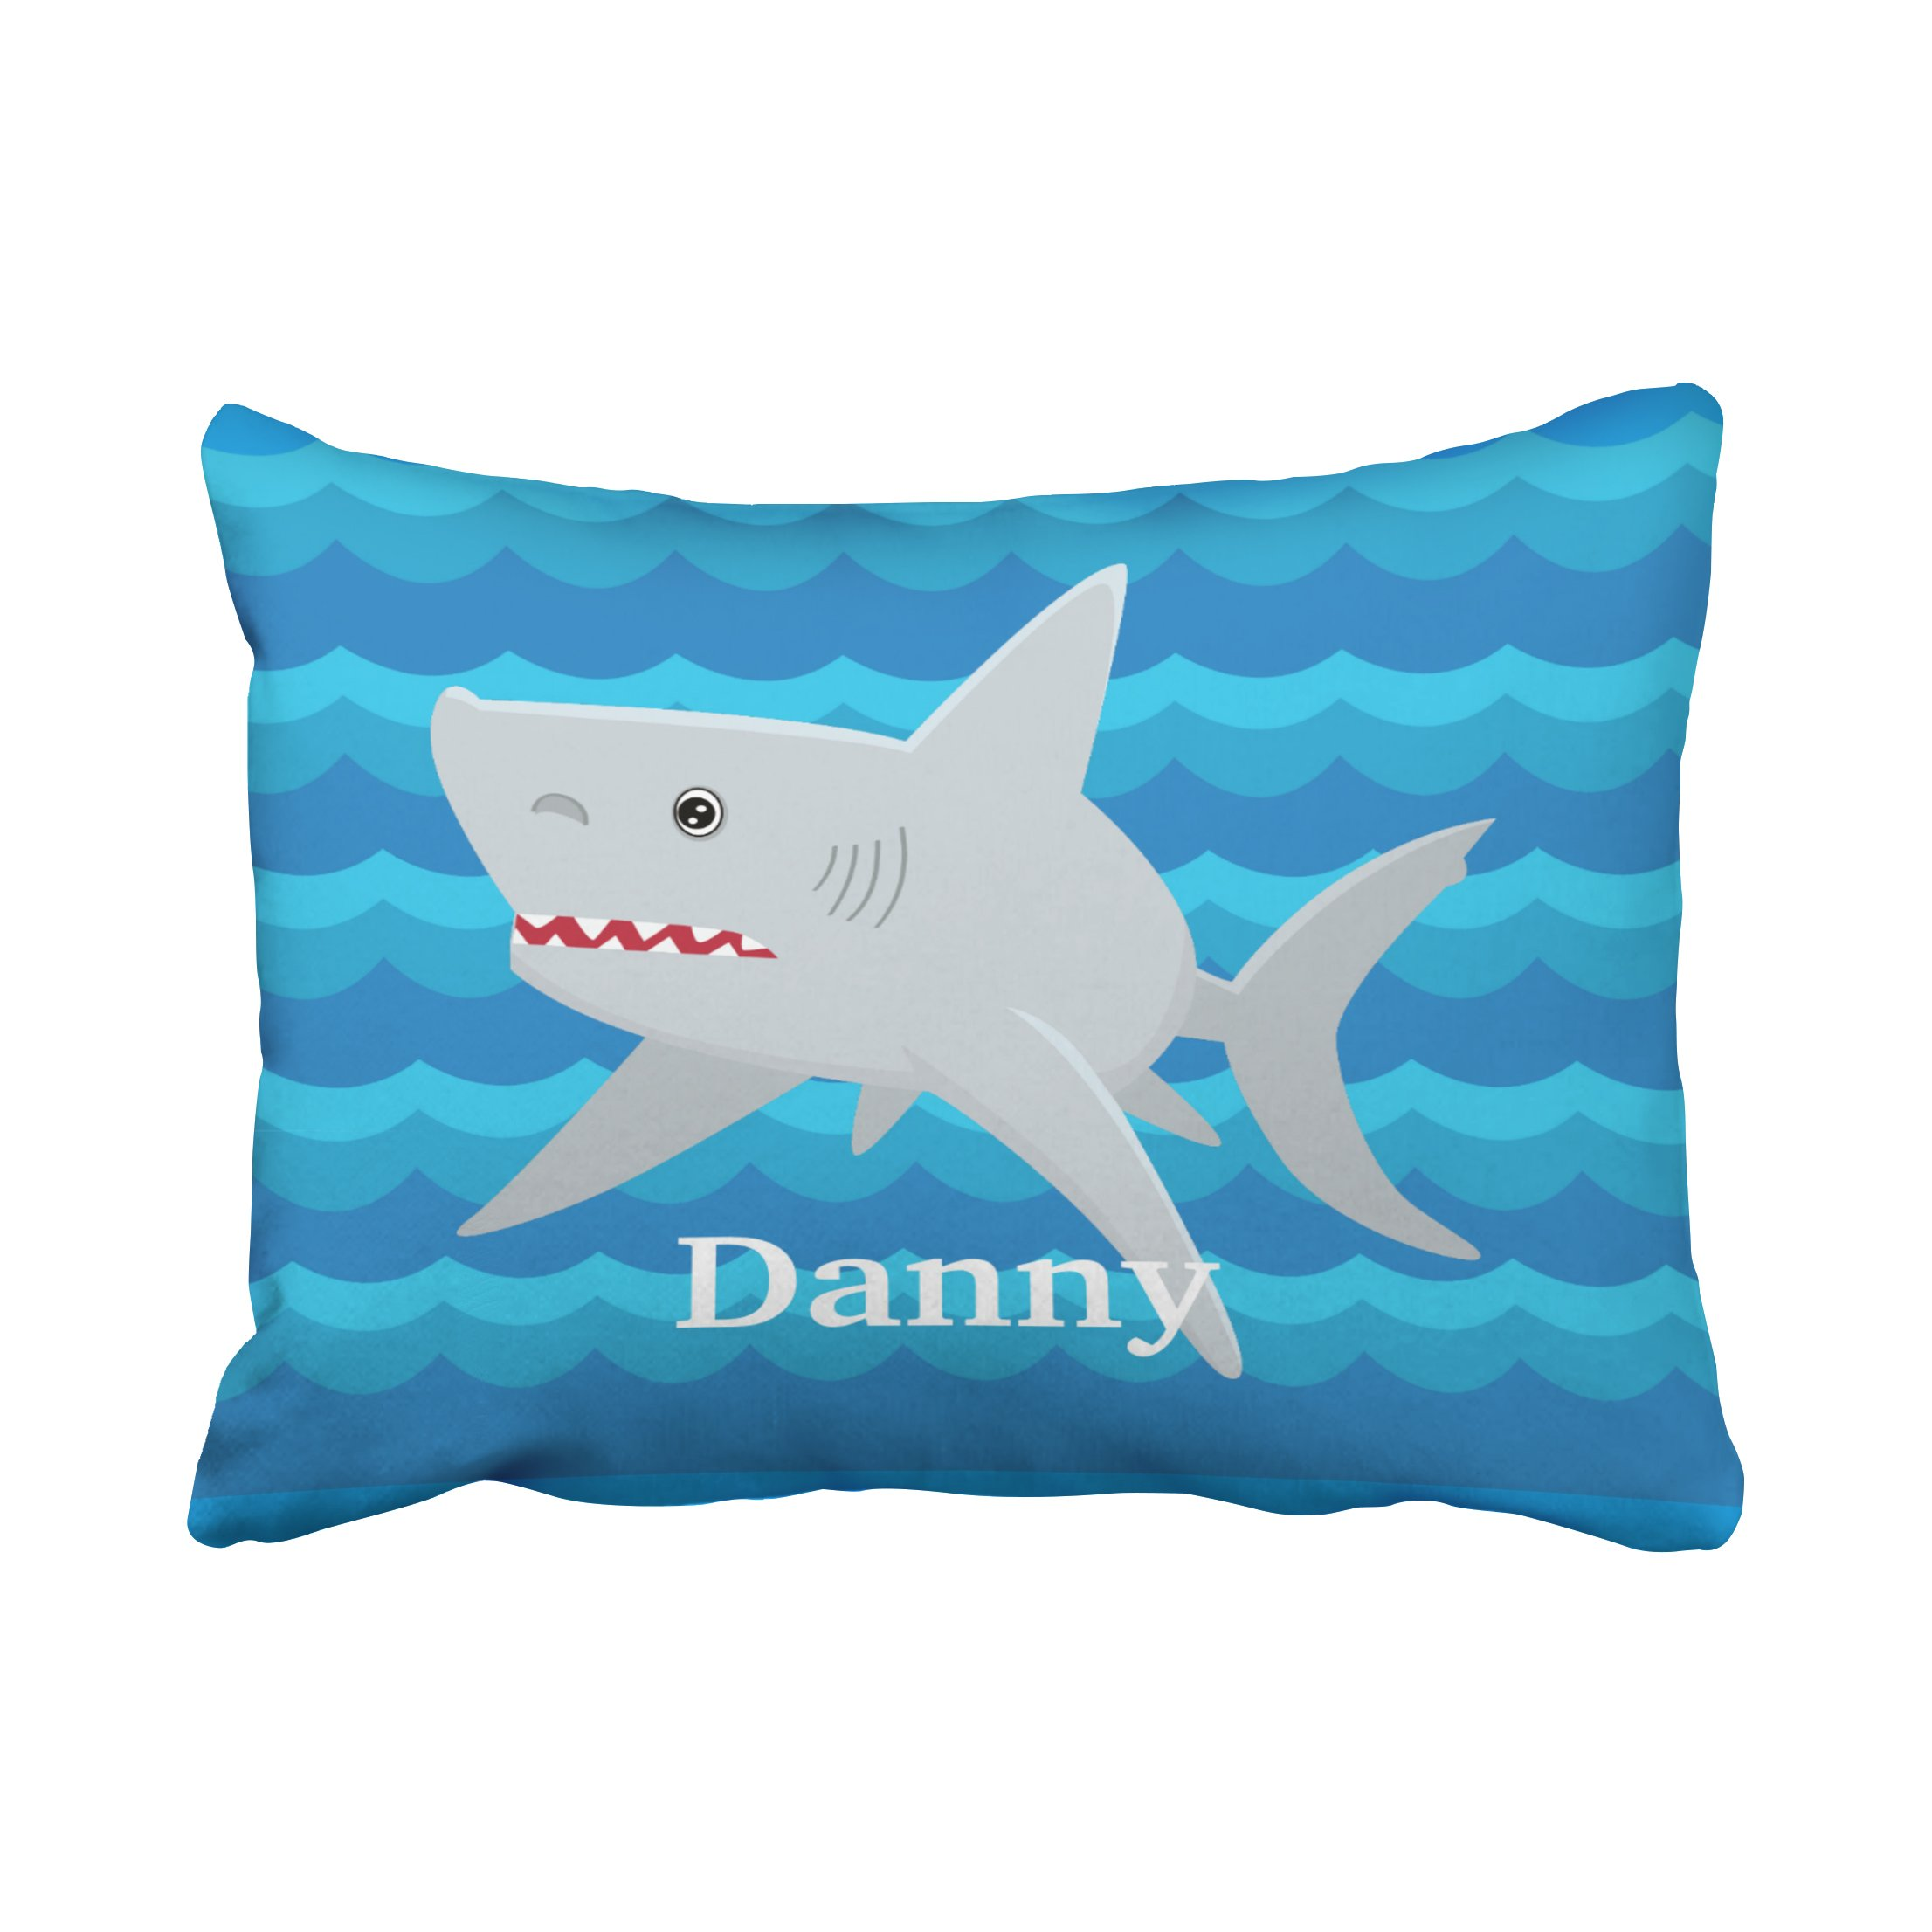 Accrocn Pillowcases Vintage Kids Shark Lover Waves Custom For Boat Gift Cushion Decorative Pillowcase Polyester 20 x 26 Inch Rectangl Standard Size Pillow Covers With Hidden Zipper